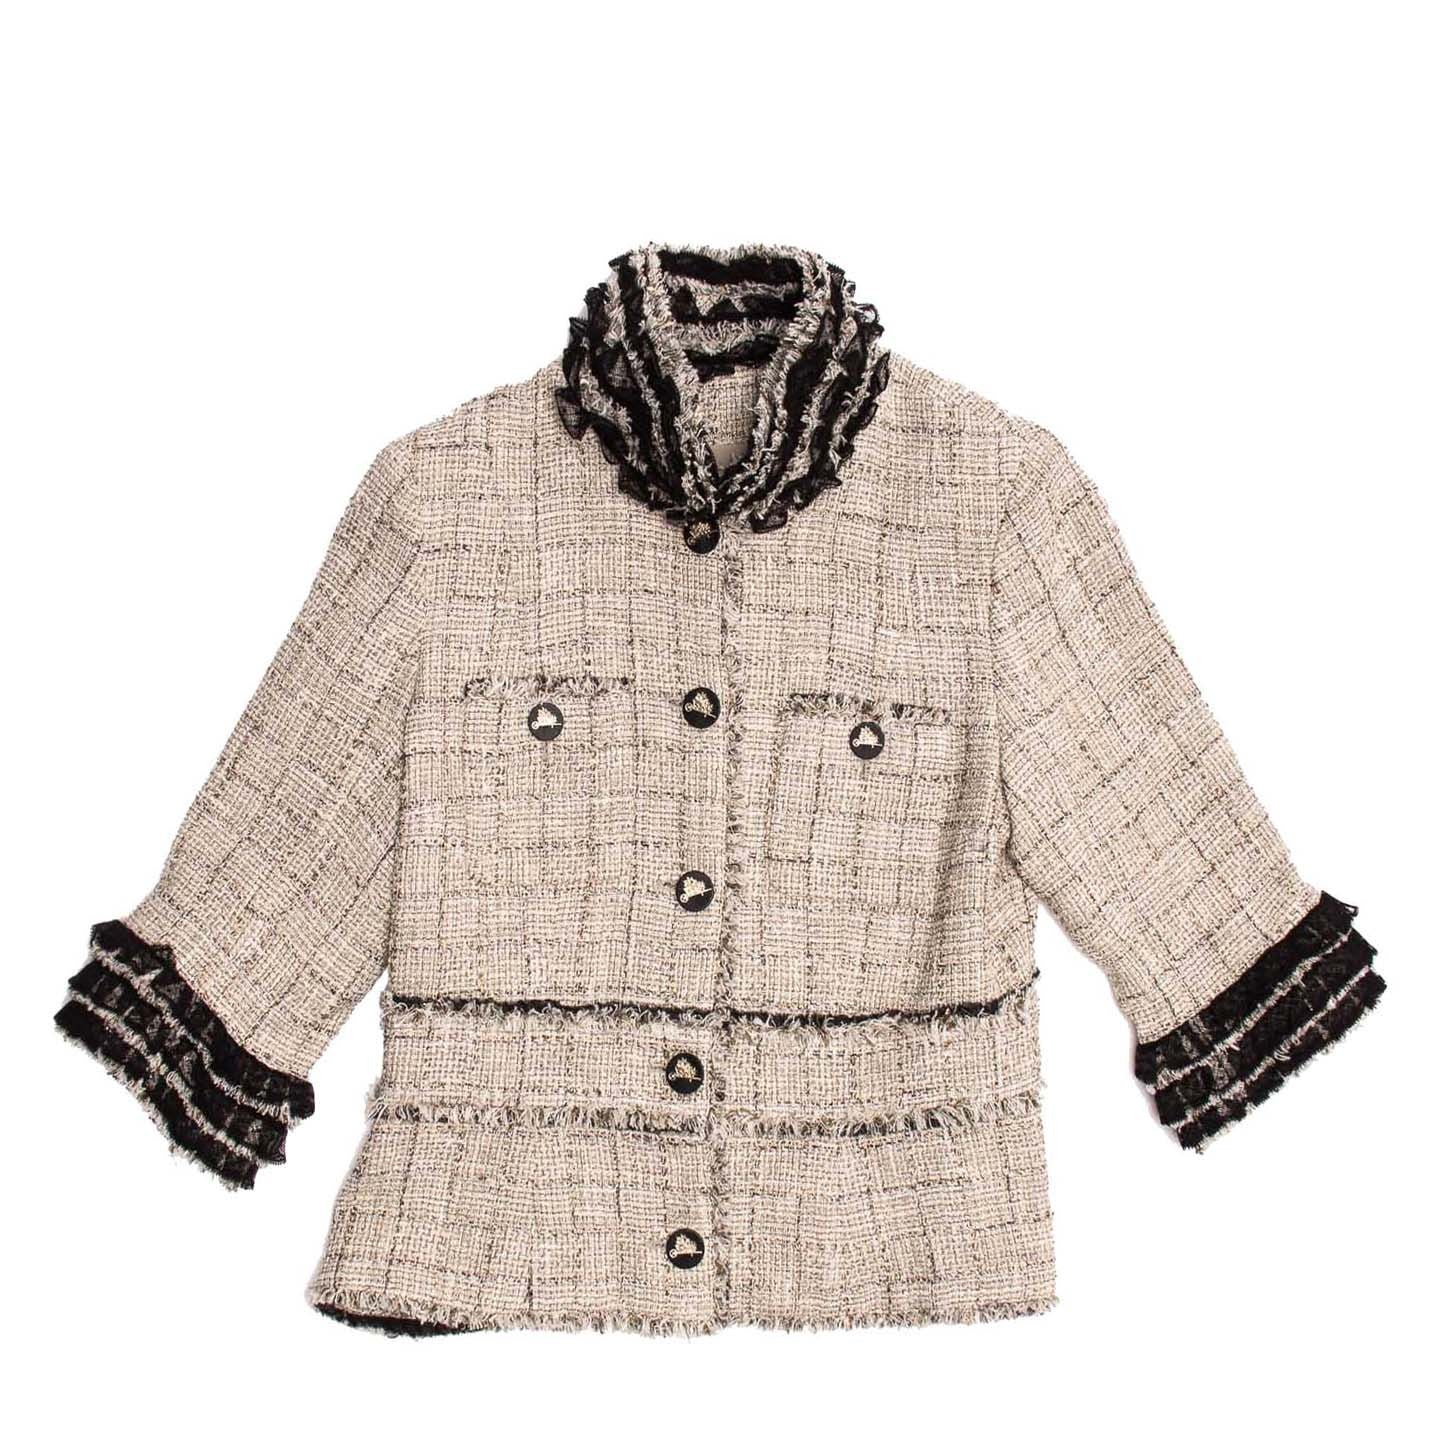 Find an authentic preowned Chanel Beige Cotton & Lace Jacket size 44 (French) at BunnyJack, where a portion of every sale goes to charity.